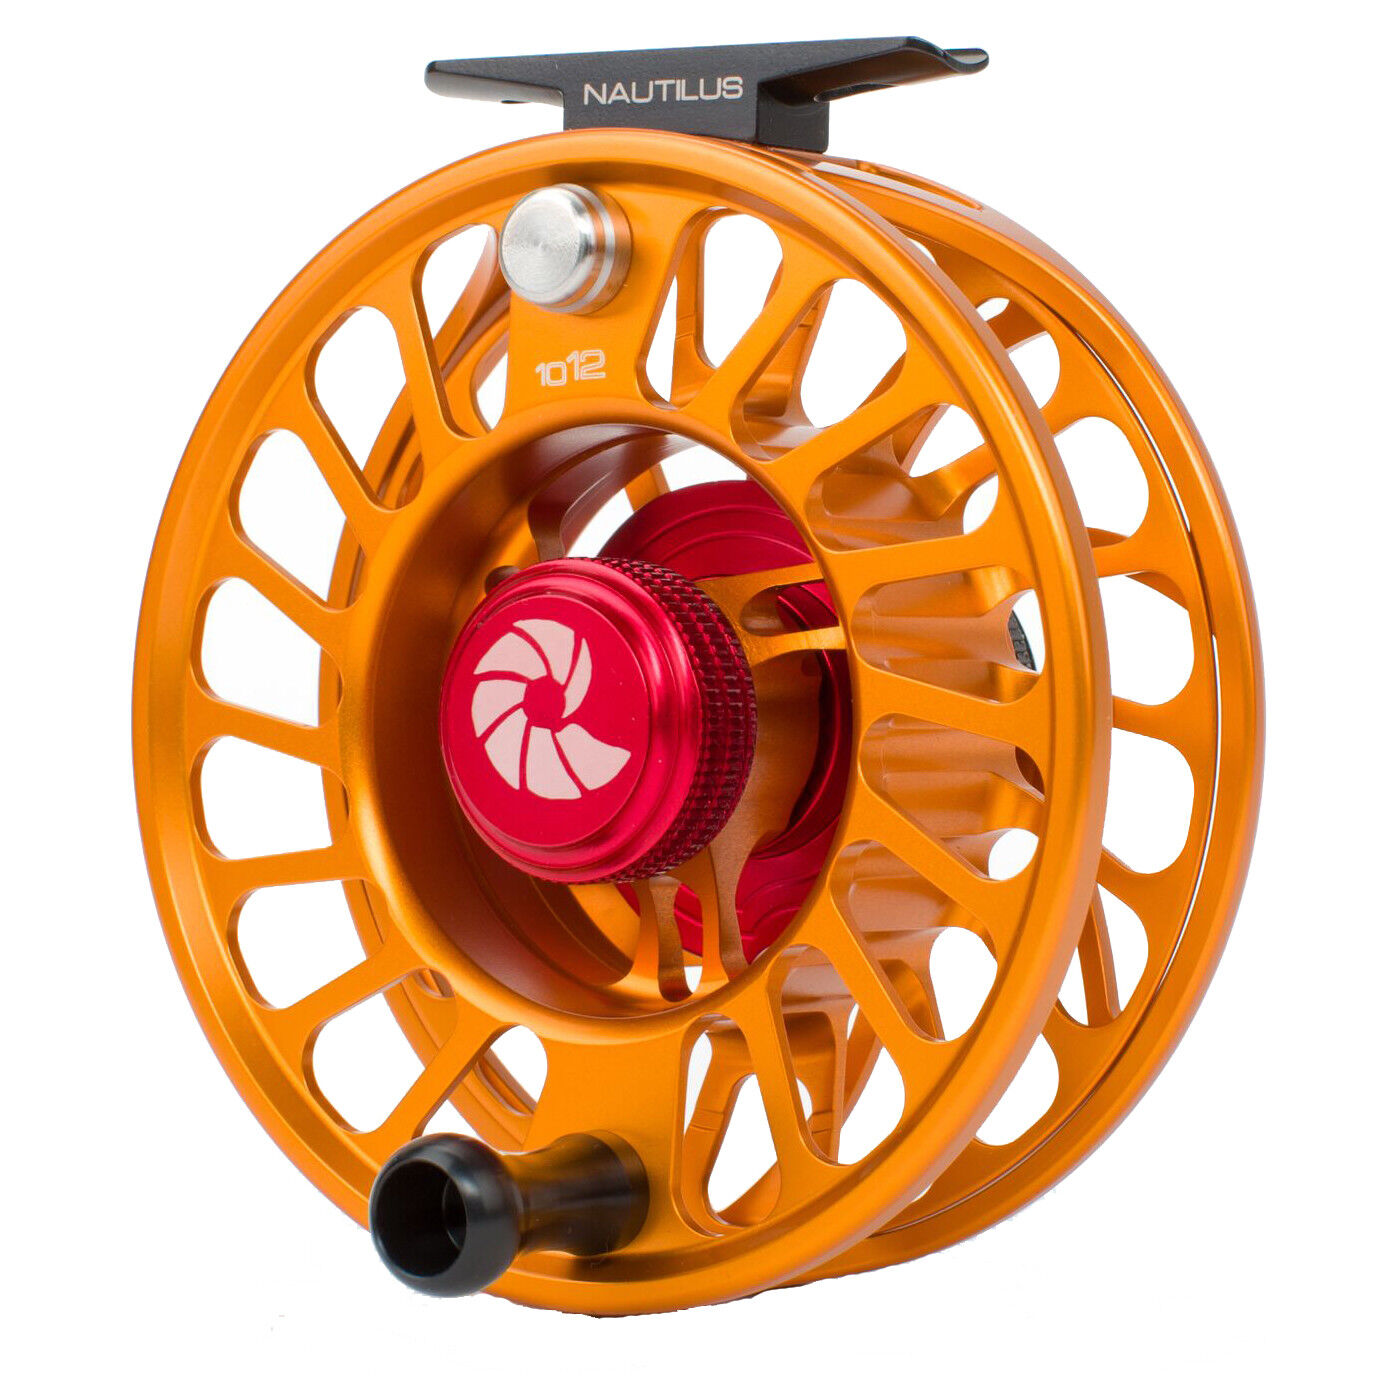 Nautilus CCF-X2 10 12 Fly Fishing Reel - orange (10-12  WT) NEW  - Free US Ship  the best after-sale service